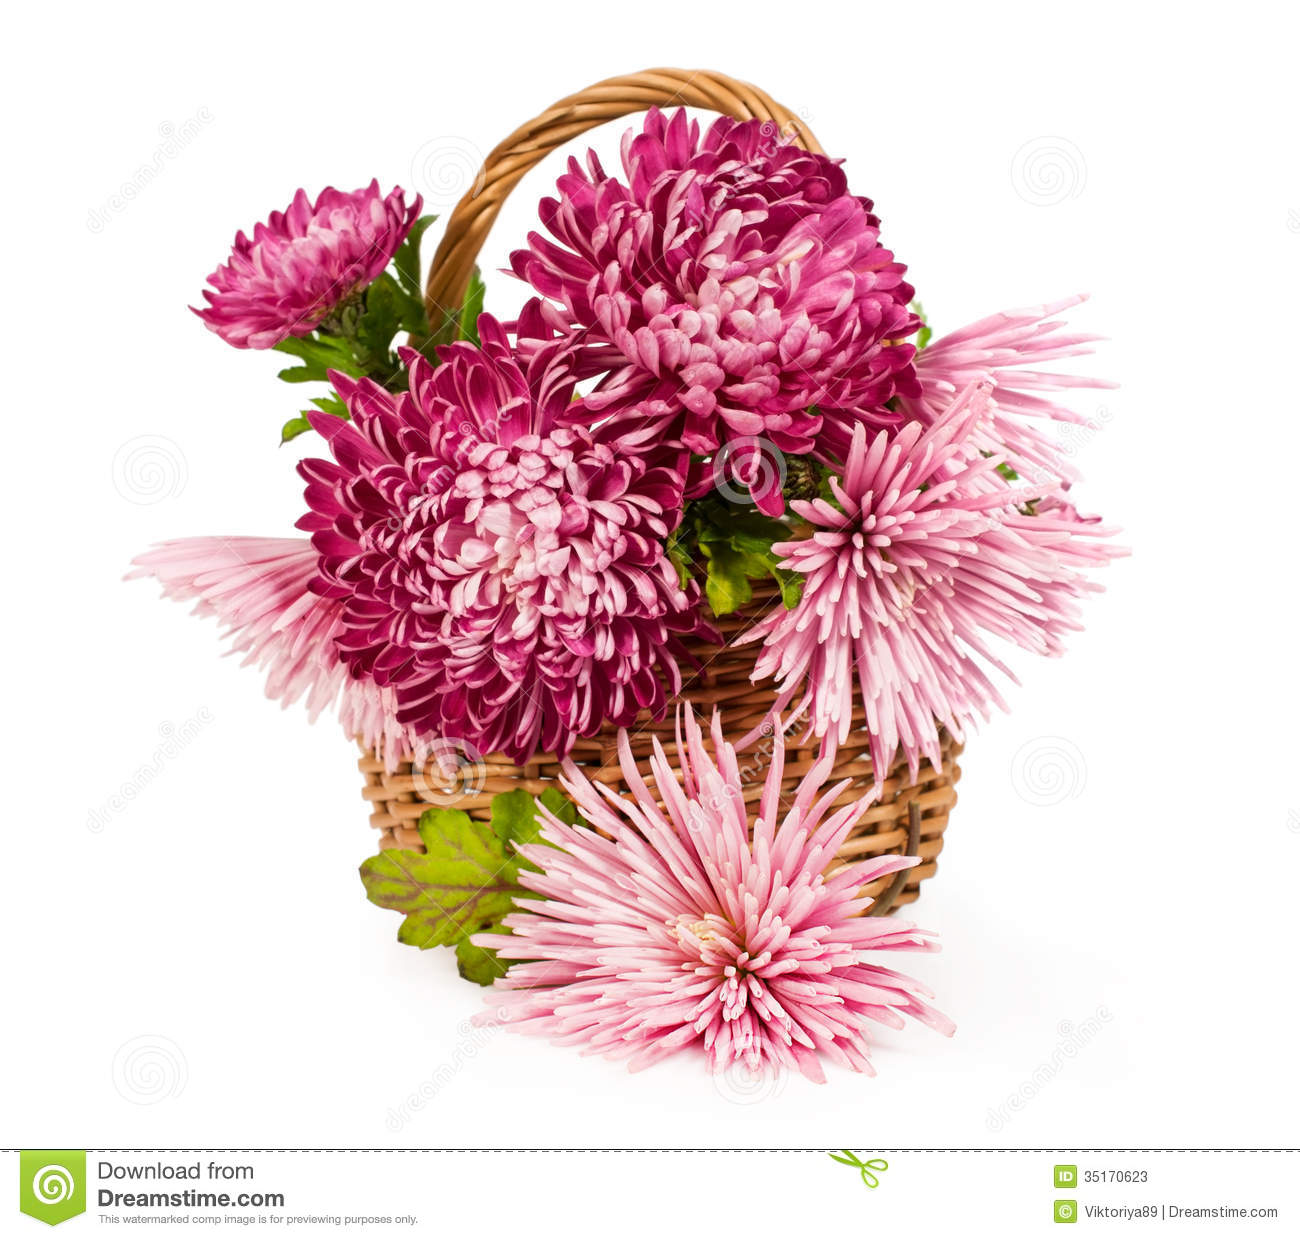 Chrysanthemums bouquet clipart - Clipground